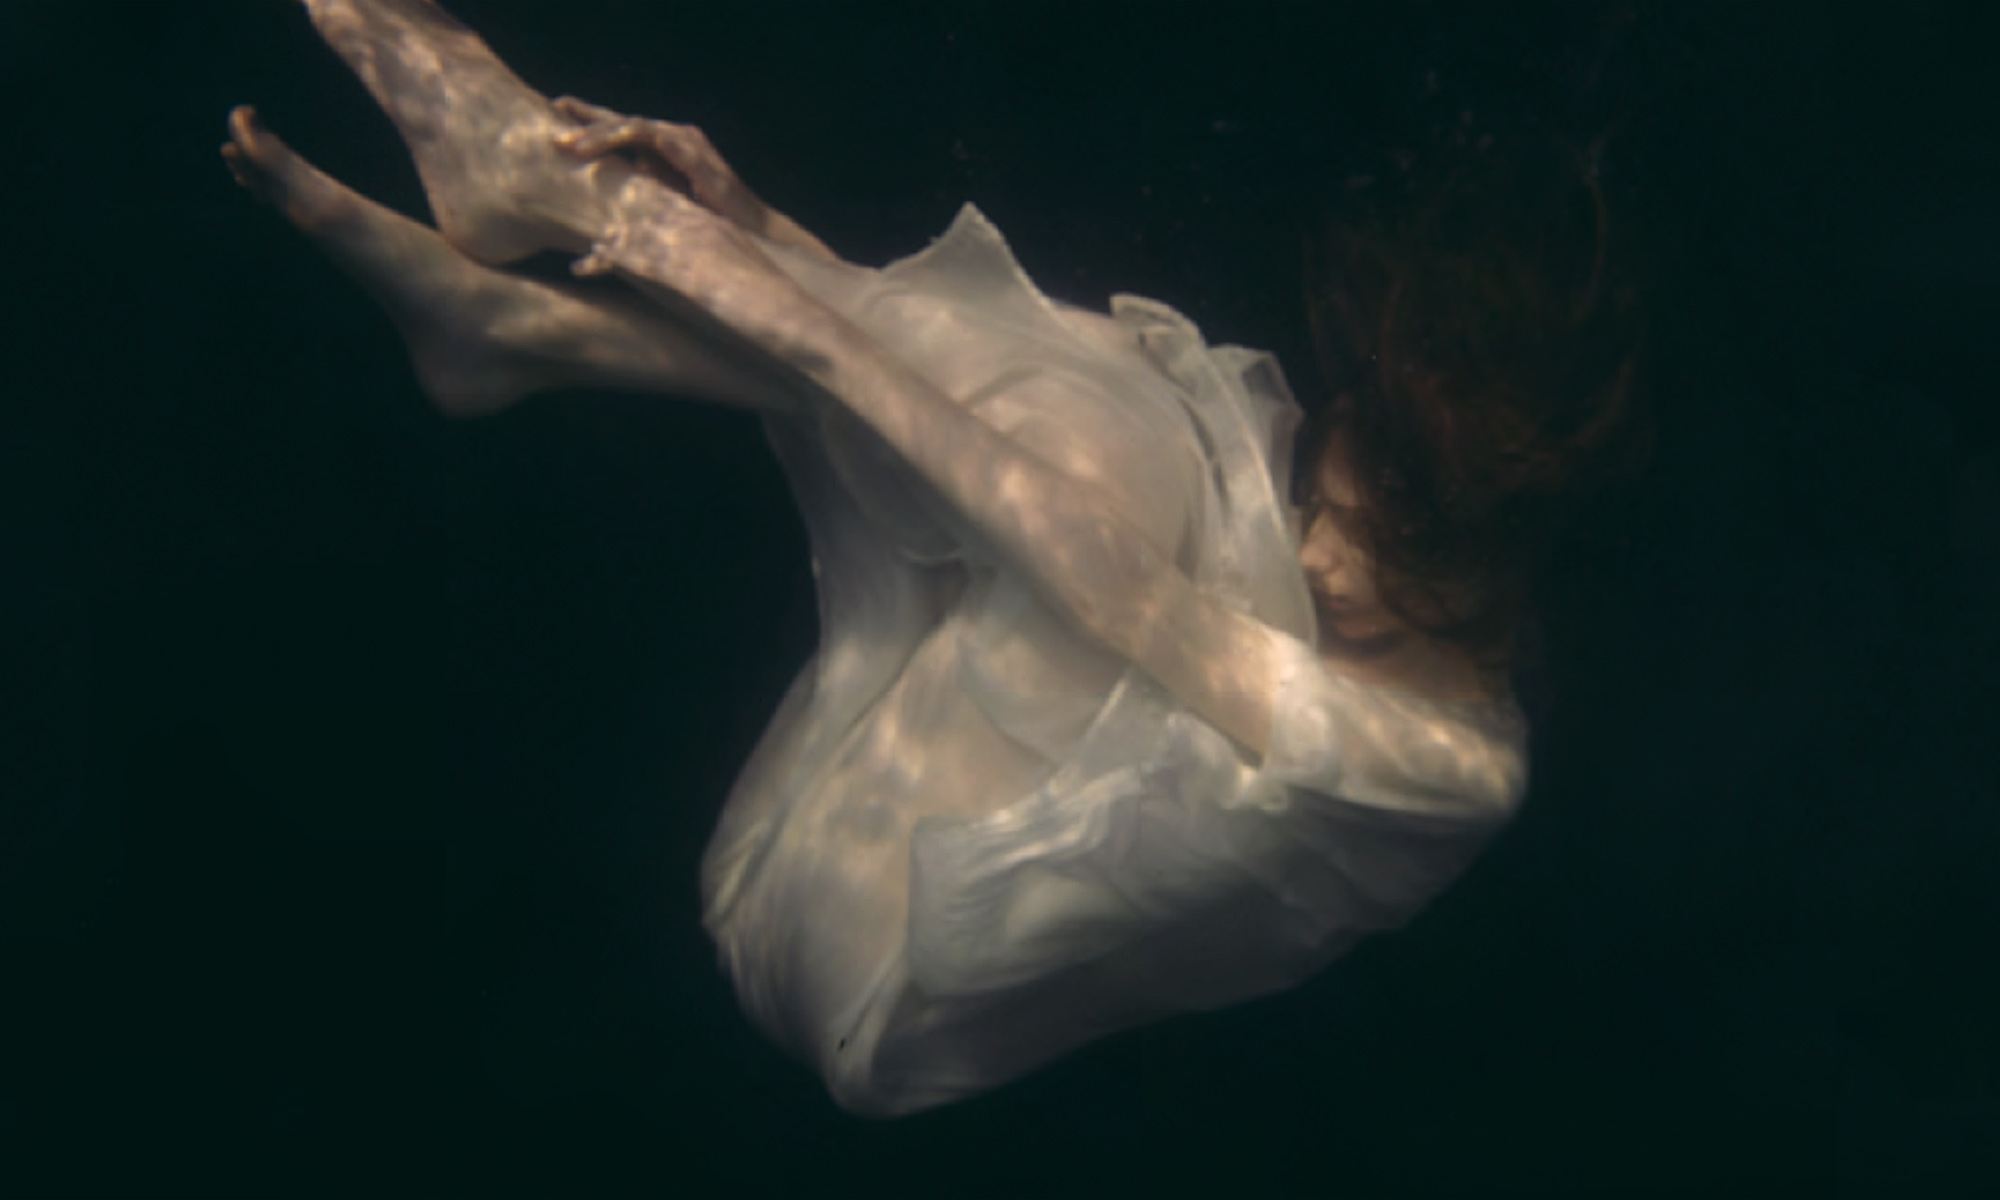 Third photo from Dance Underwater